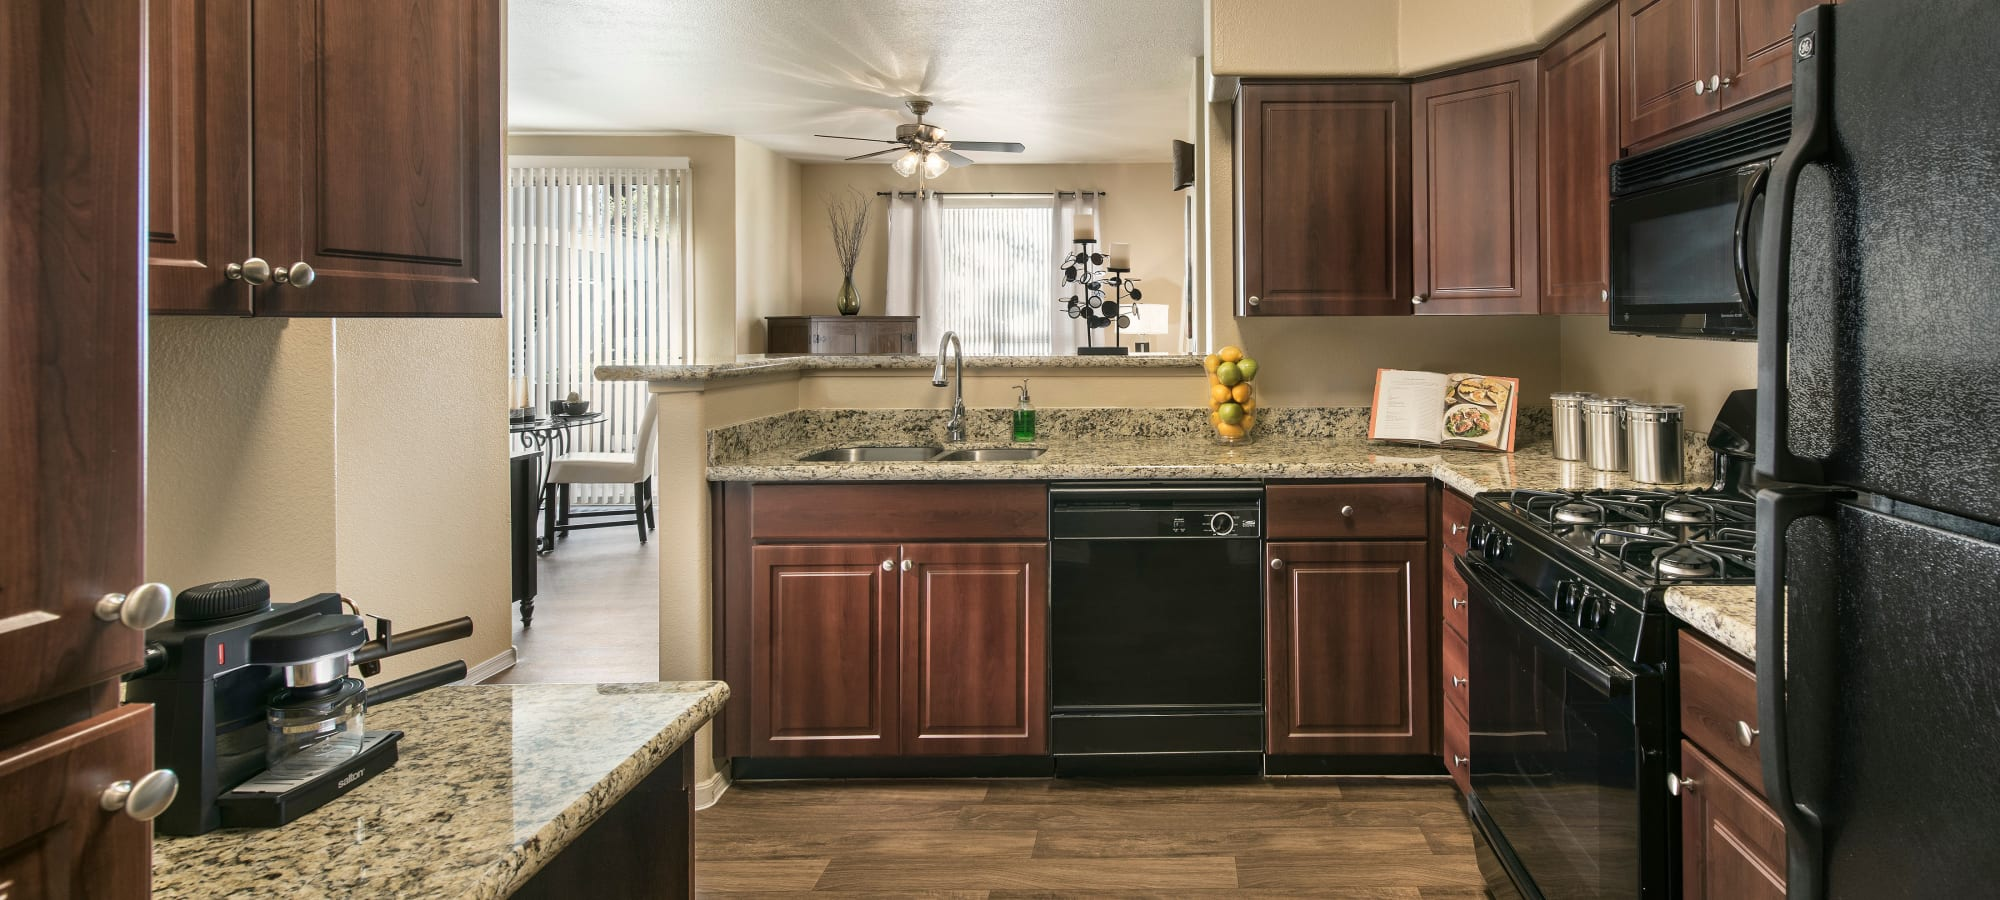 Resident kitchen at Laguna at Arrowhead Ranch in Glendale, Arizona